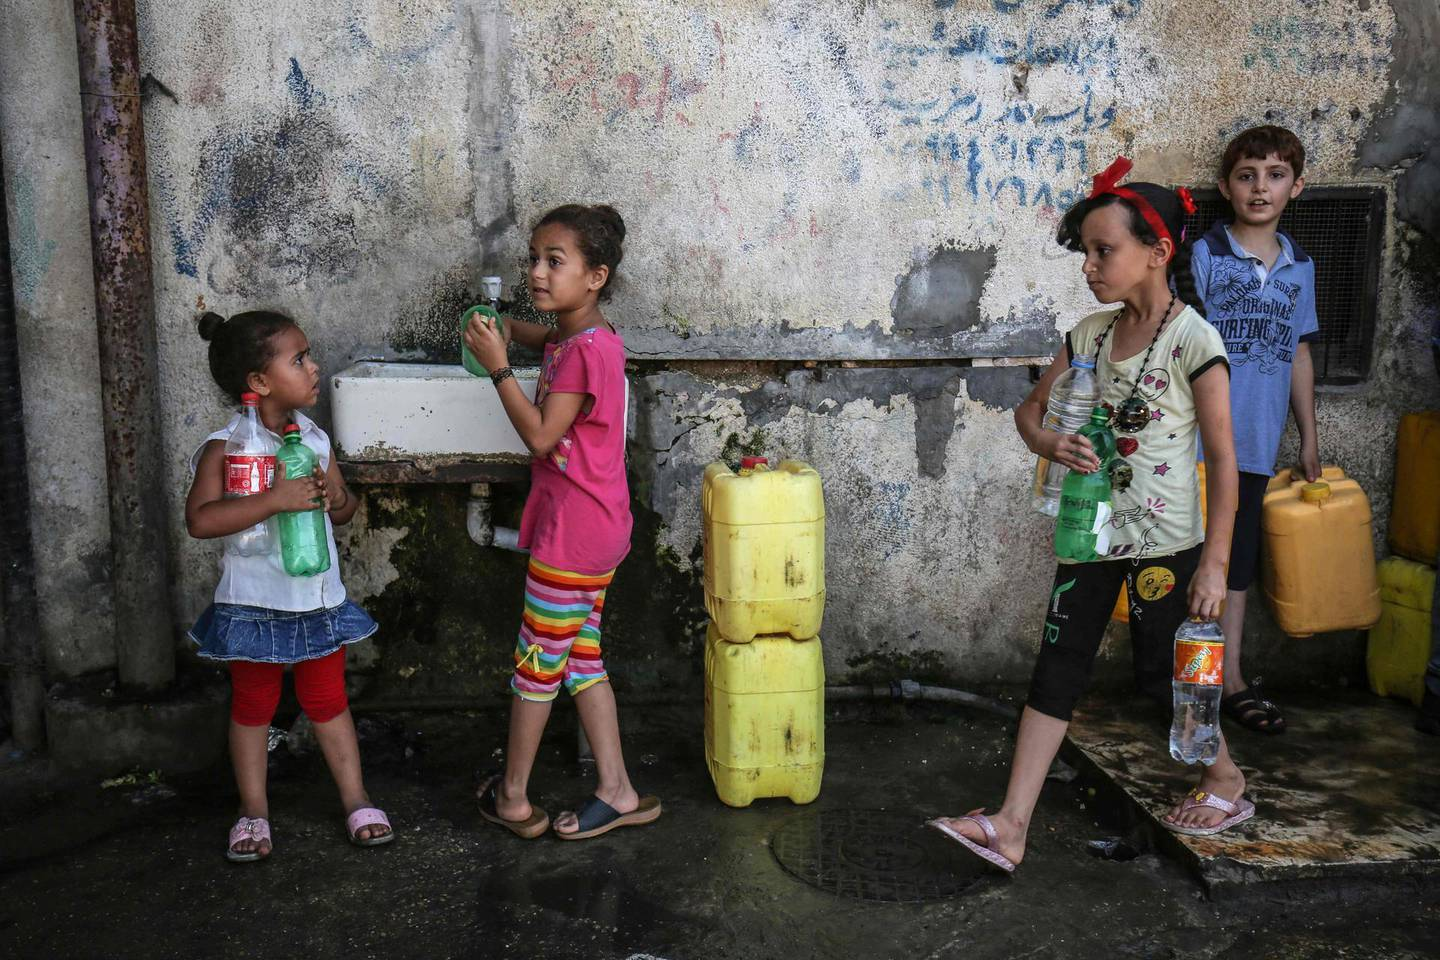 Palestinian children fill jerricans with drinking water from public taps at a refugee camp in Rafah in the southern Gaza Strip on July 30, 2019. An internal ethics report has alleged mismanagement and abuses of authority at the highest levels of the UN agency for Palestinian refugees even as the organisation faced an unprecedented crisis after US funding cuts. Lacking natural resources, the Gaza Strip suffers from a chronic shortage of water, electricity and petrol. More than two-thirds of the population depends on humanitarian aid. / AFP / SAID KHATIB